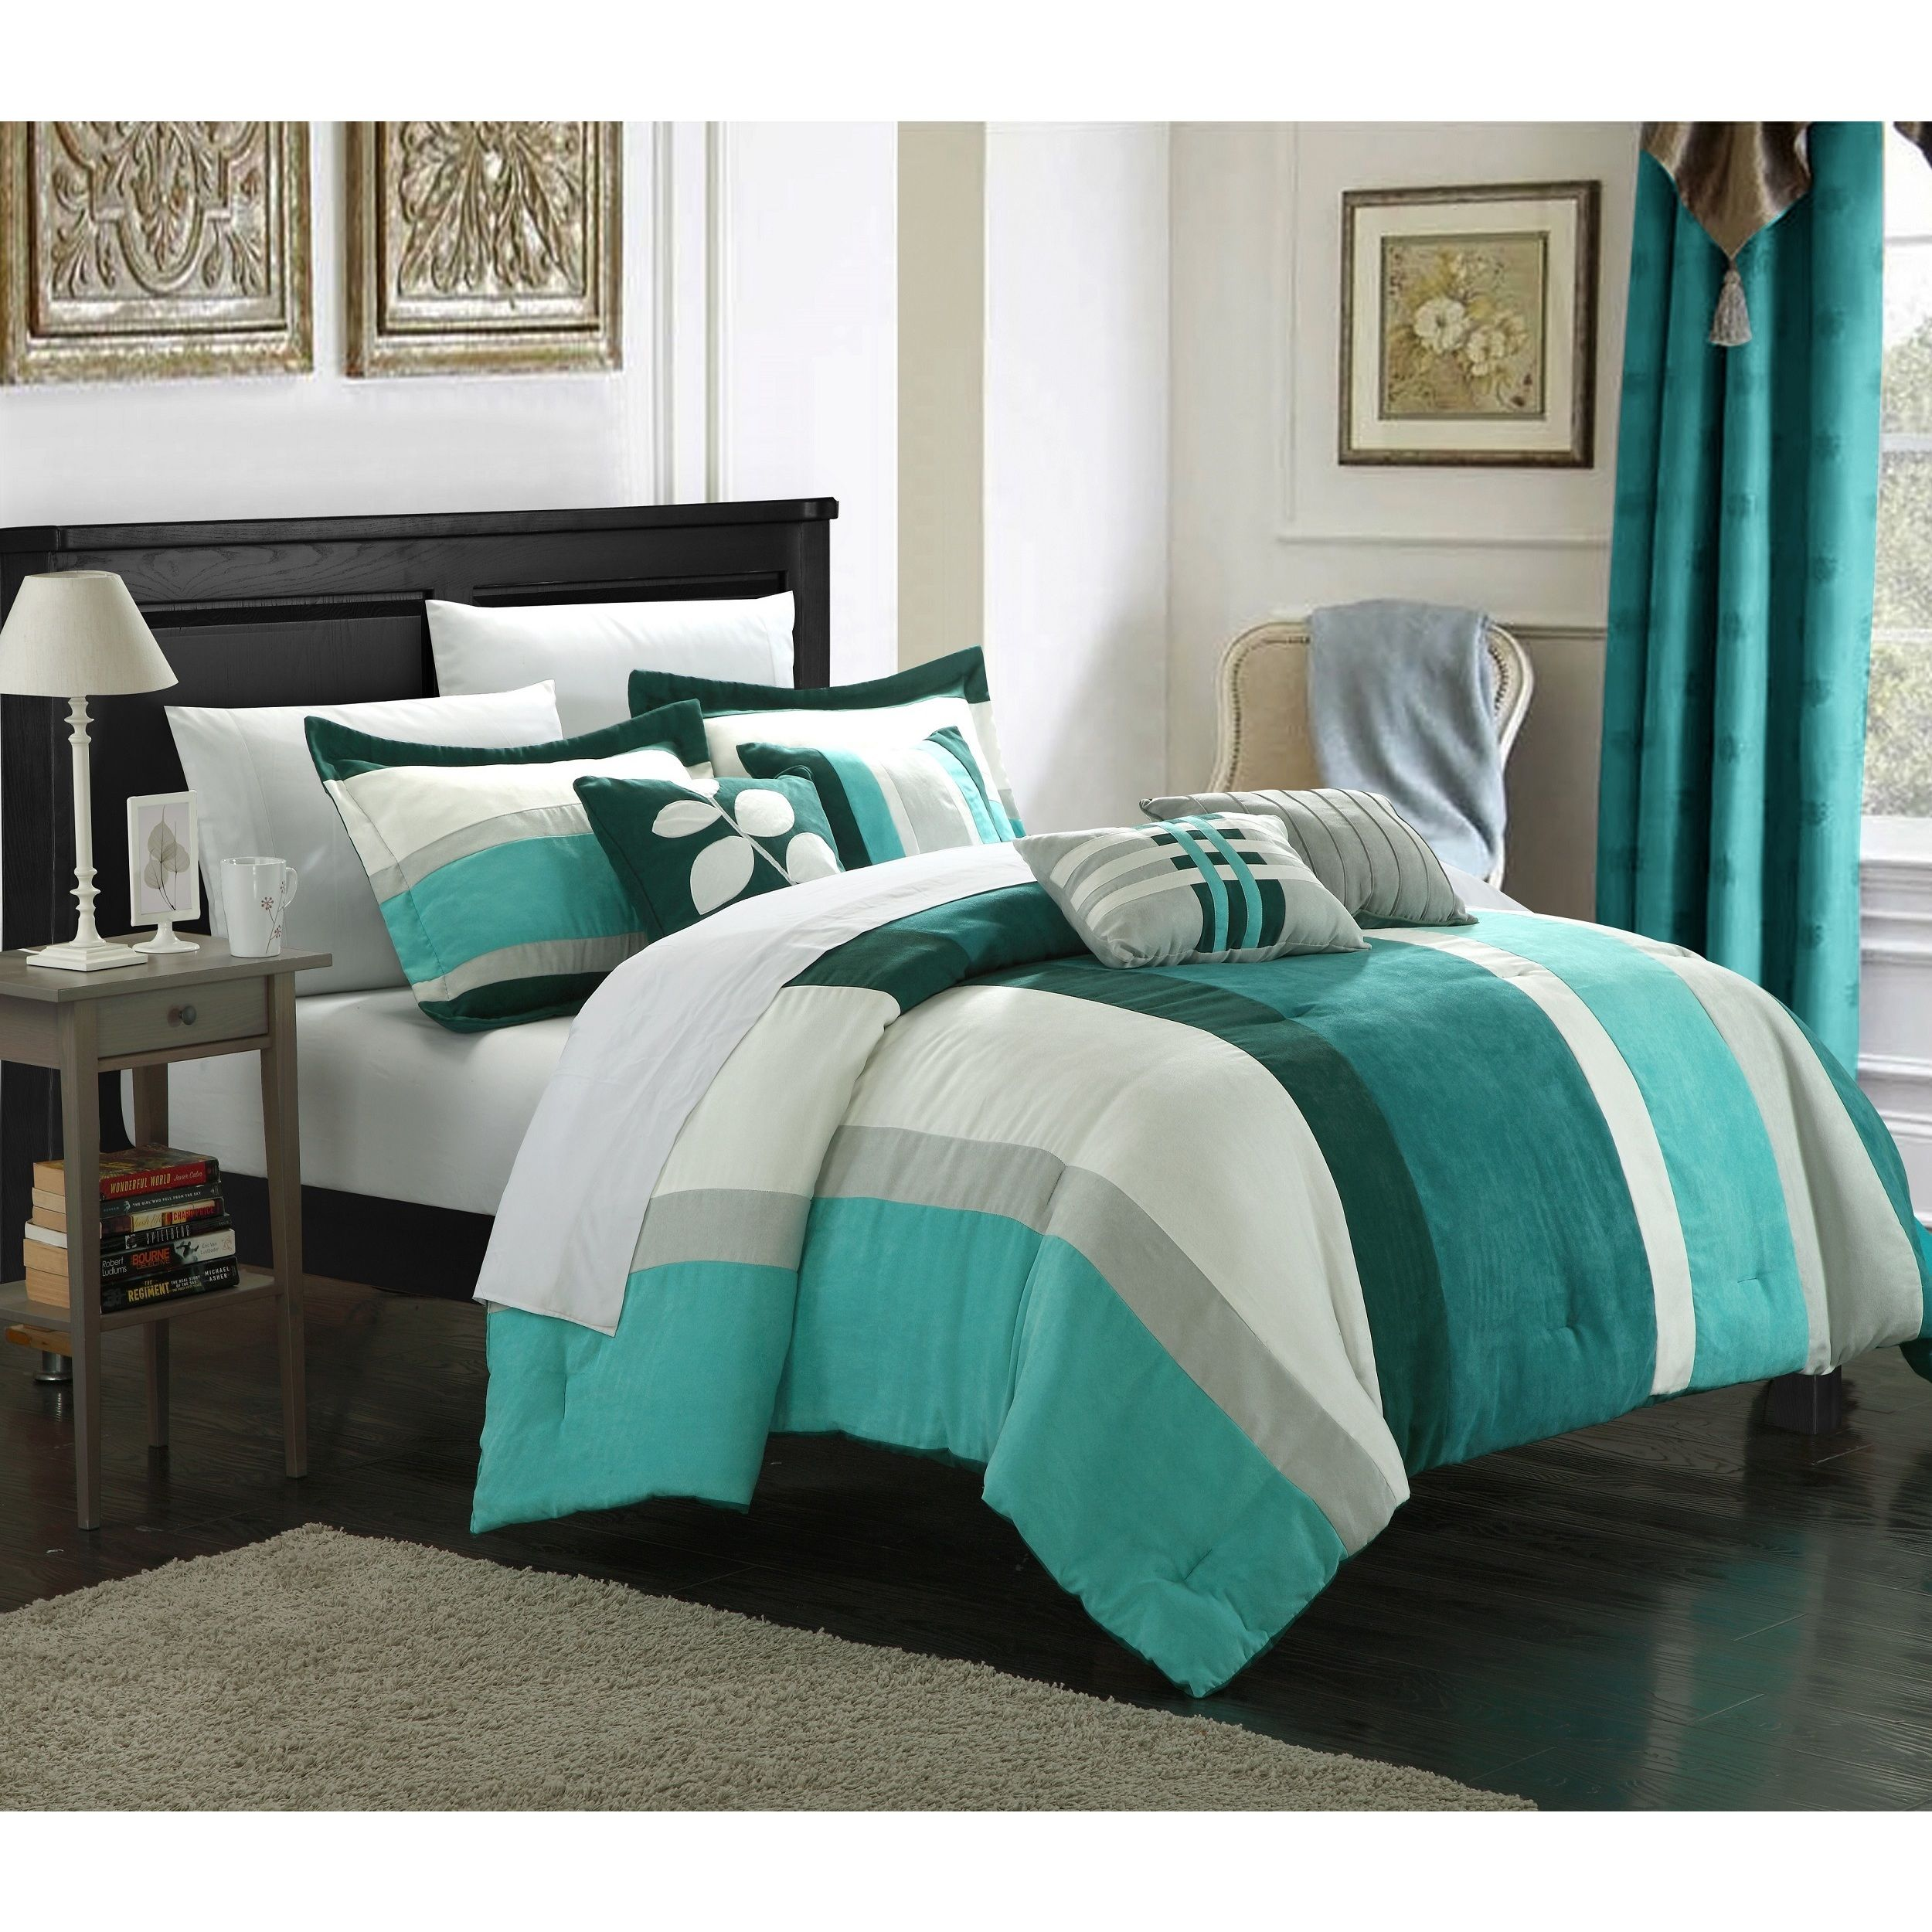 dye bath pdx comforter set bed reviews striped wayfair tie